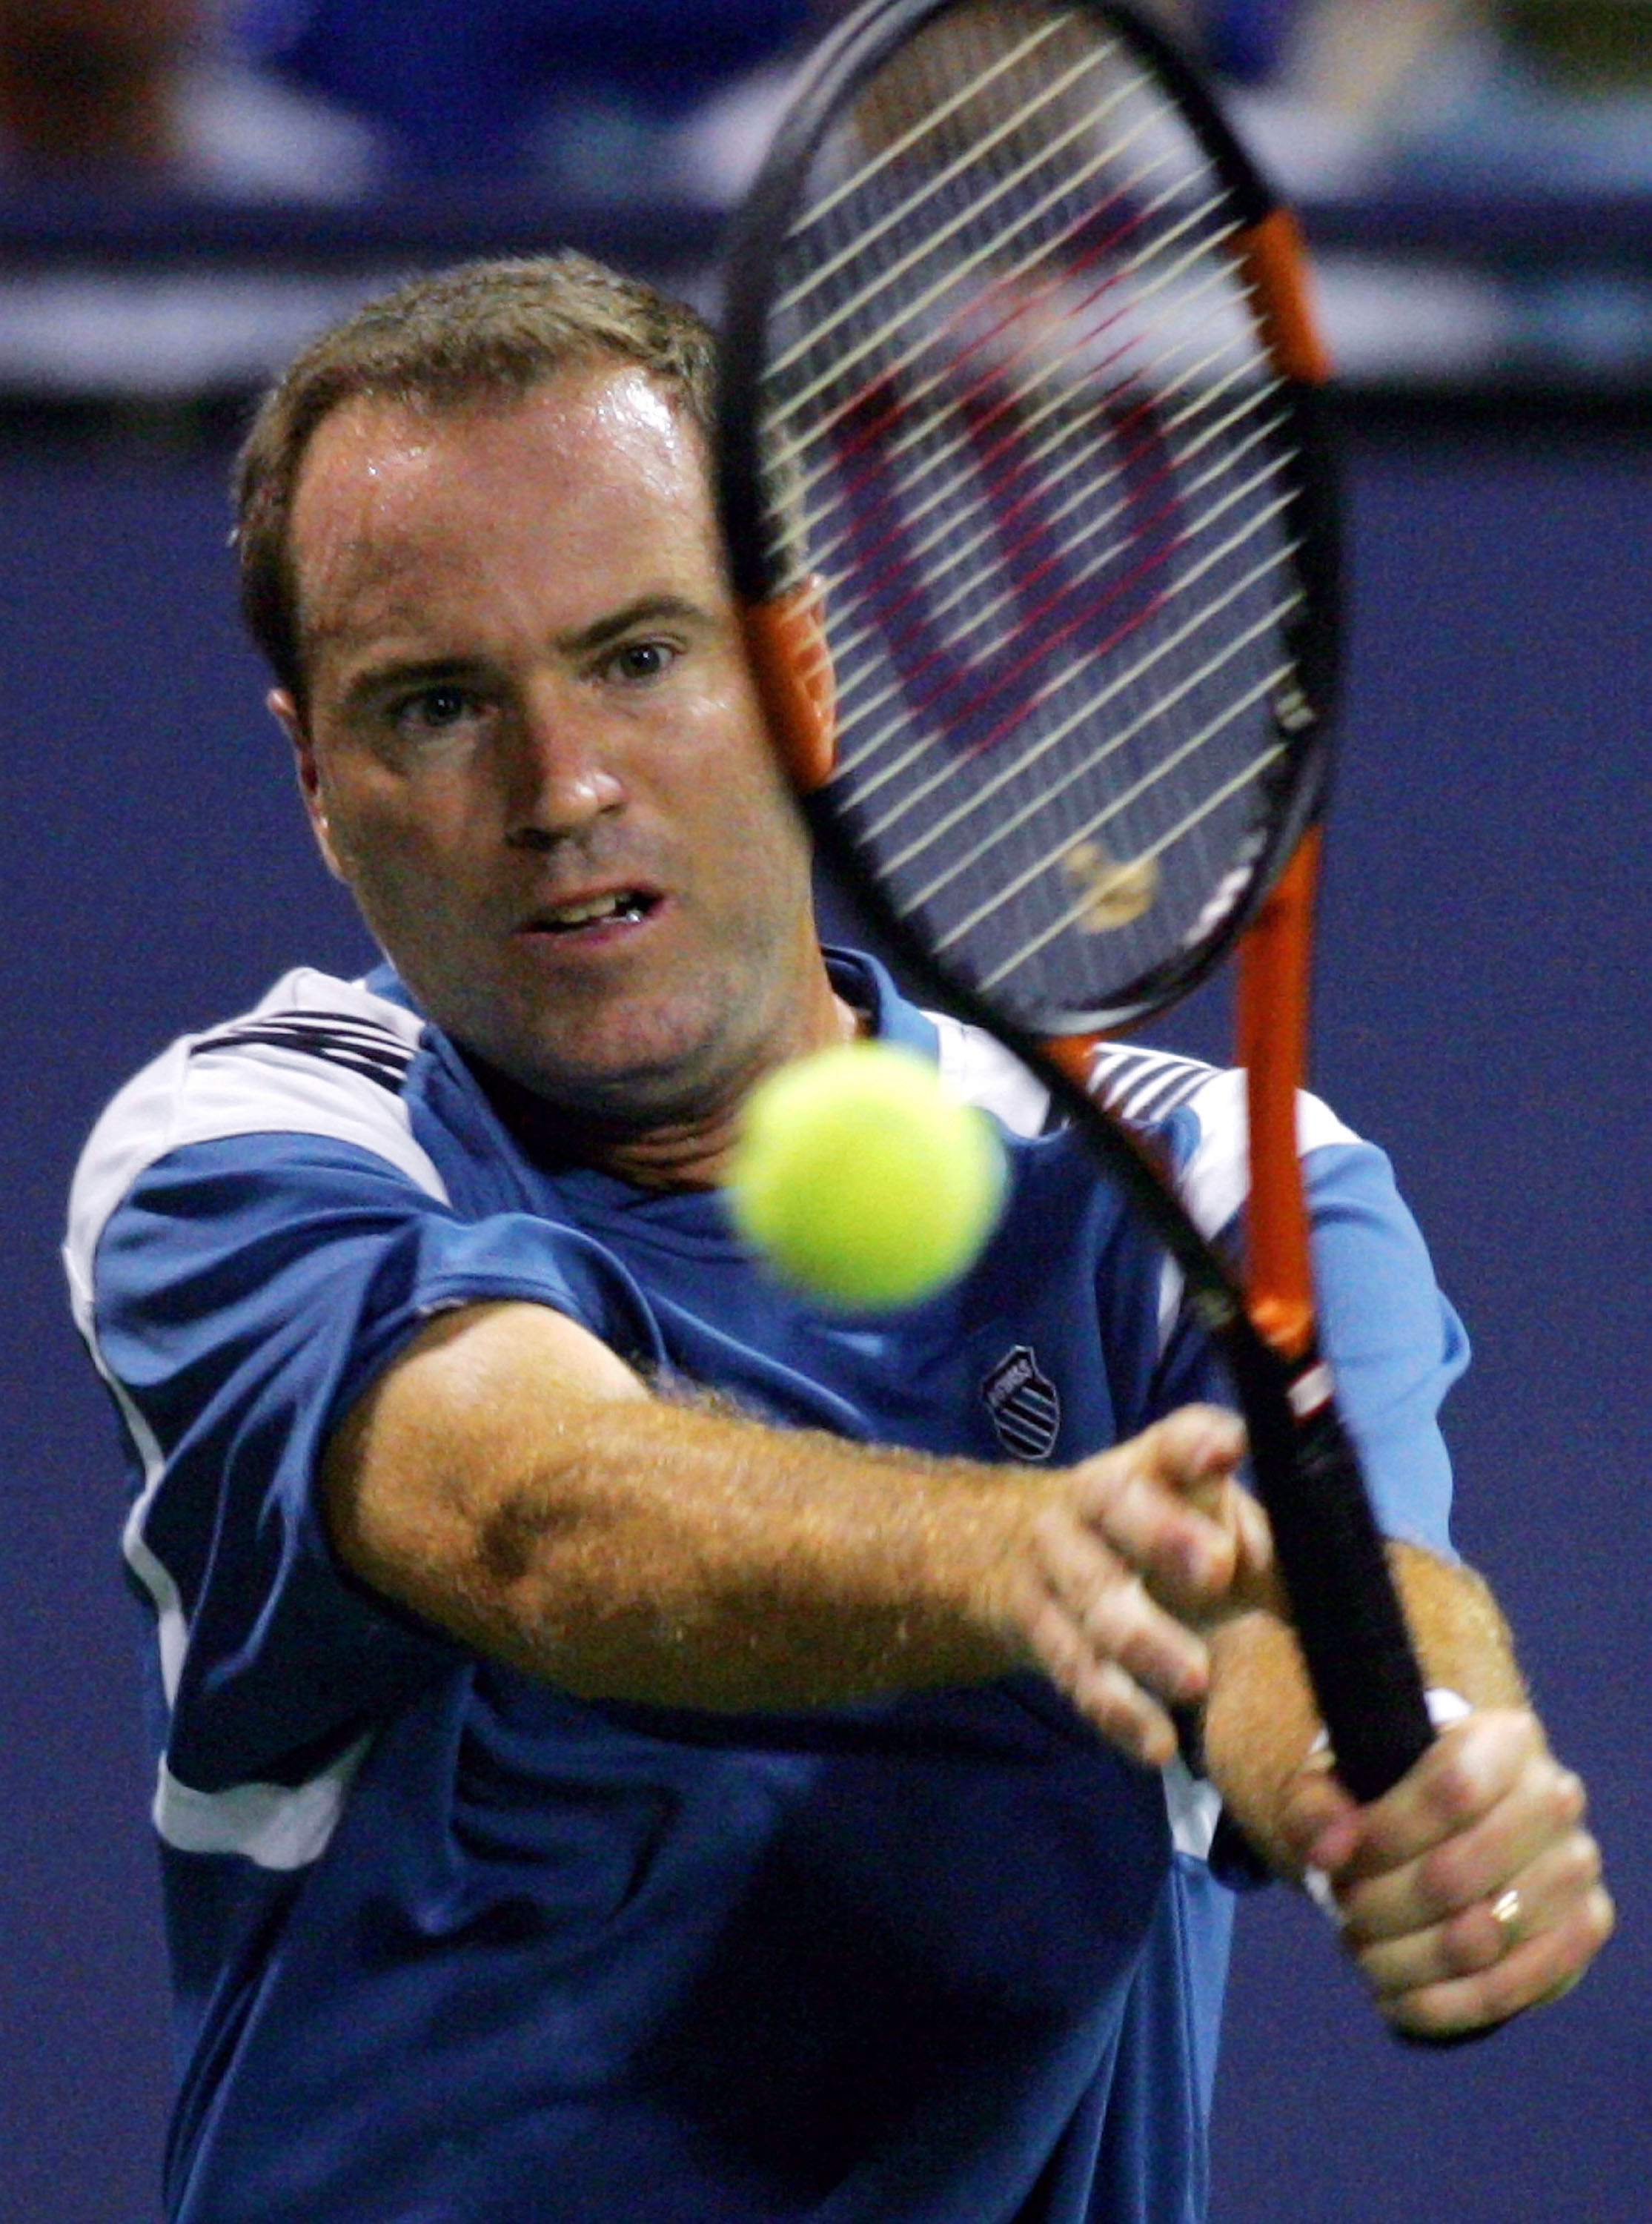 LOS ANGELES - JULY 15:  Rick Leach returns the ball during day 4 of the Mercedes-Benz Cup on July 15, 2004 at the Los Angeles Tennis Center at UCLA in Los Angeles, California.  Leach and Brian Macphie played doubles against Jonathan Erlich and Andy Ram of